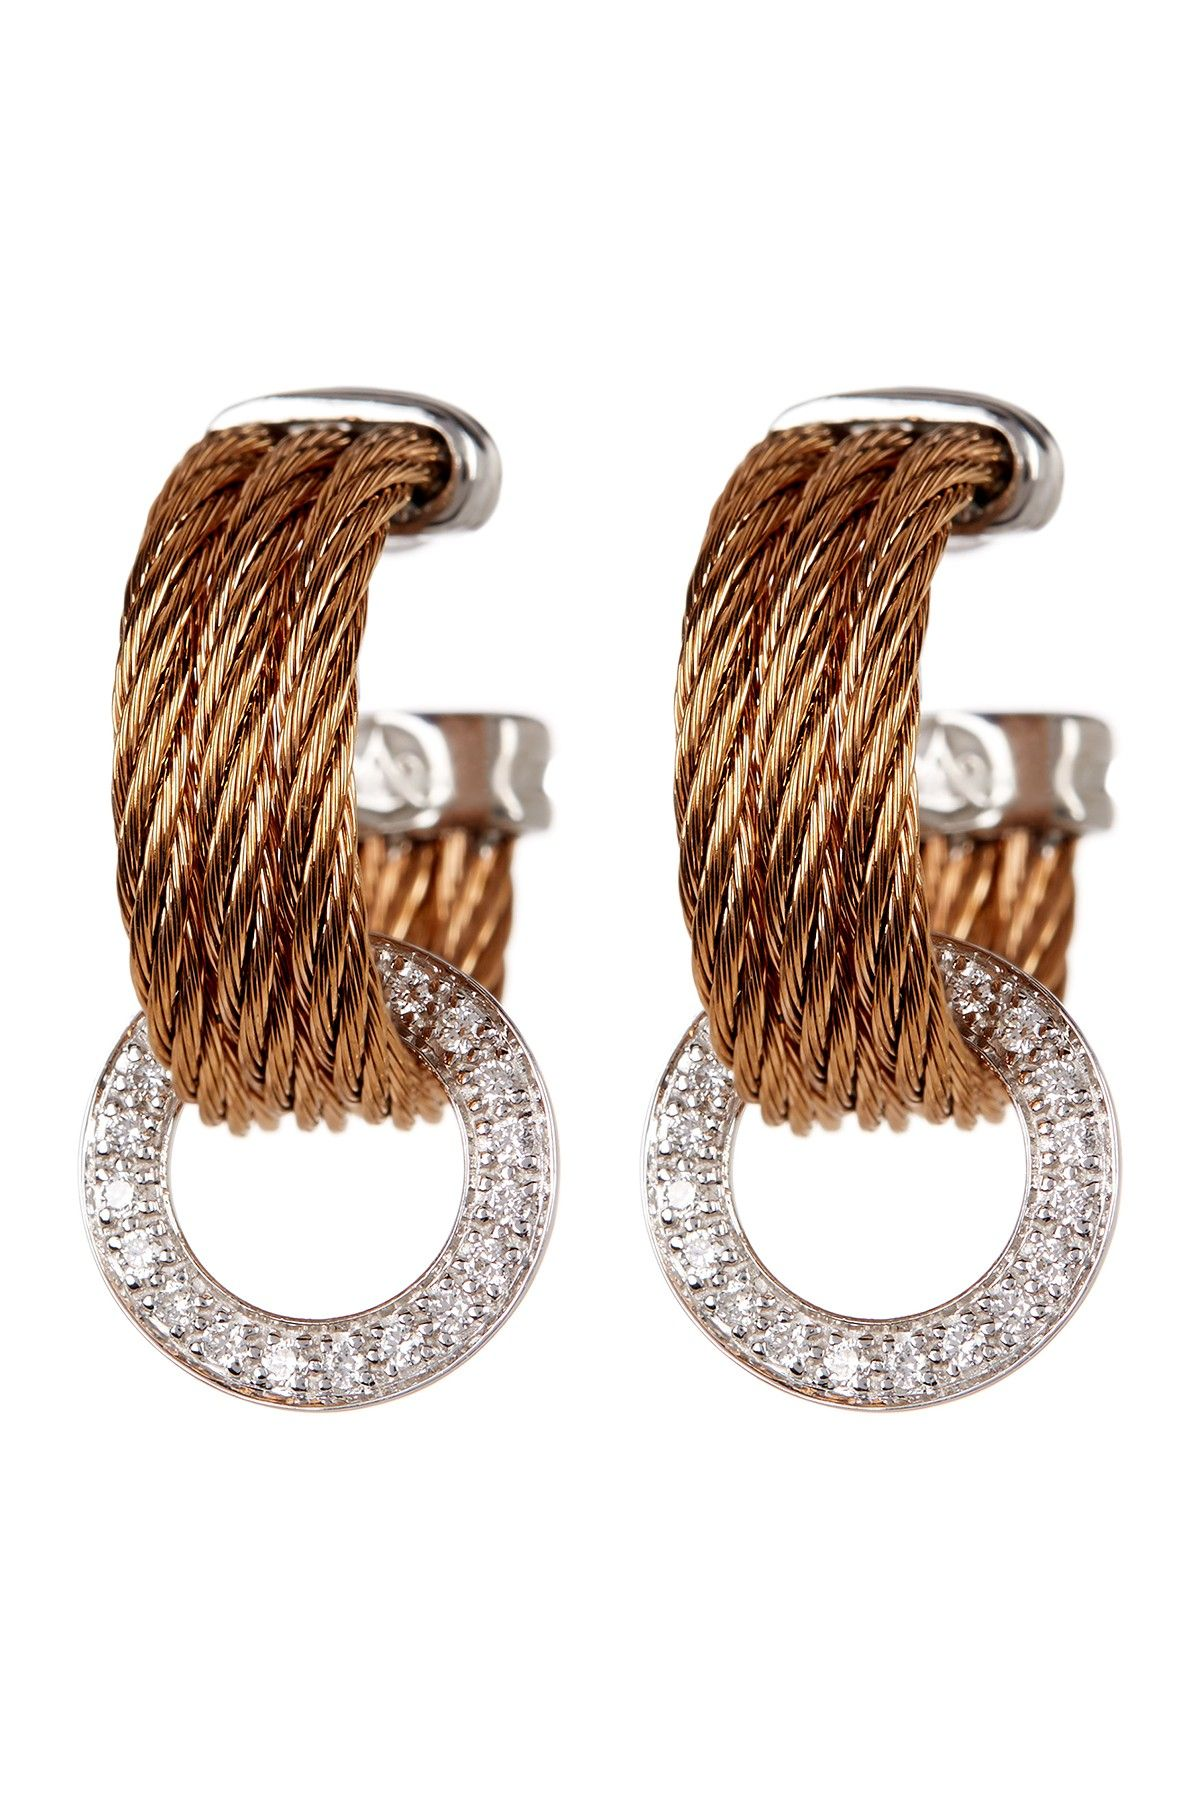 18K White Gold & Diamond Stainless Steel Cable Hoop Earrings 0 36